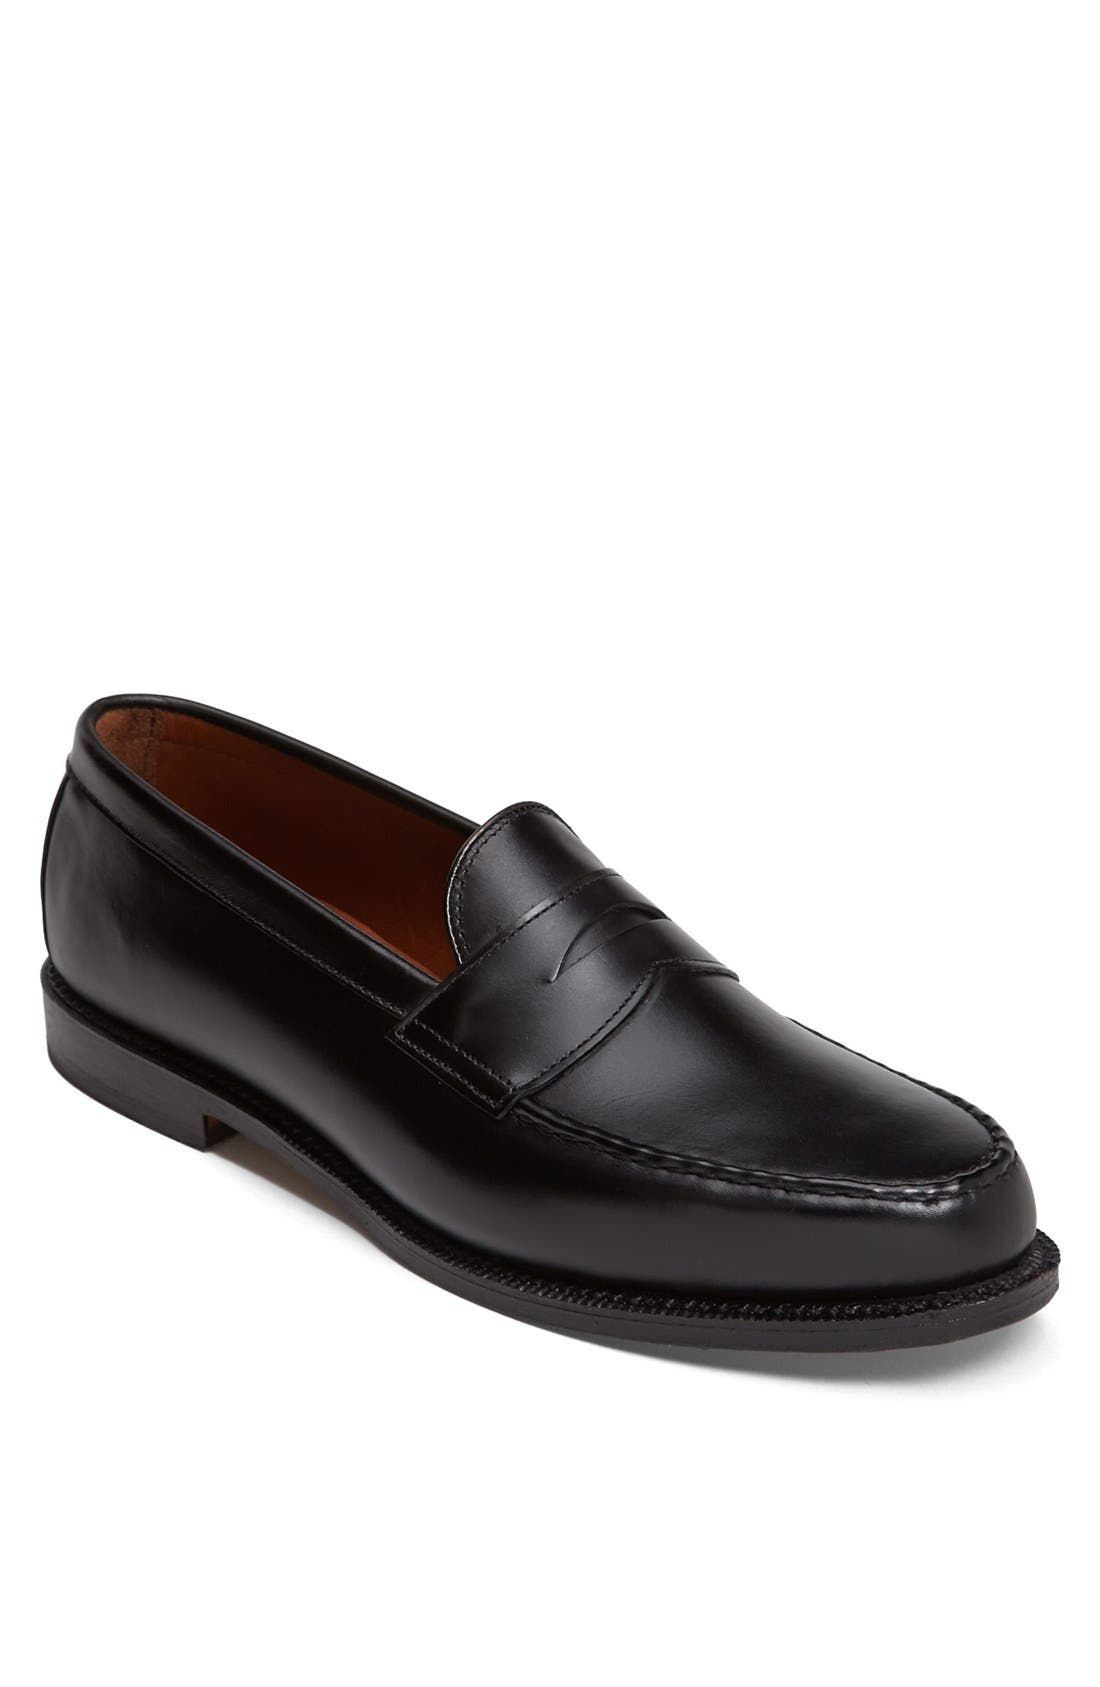 Main Image - Allen Edmonds 'Patriot' Penny Loafer (Men)